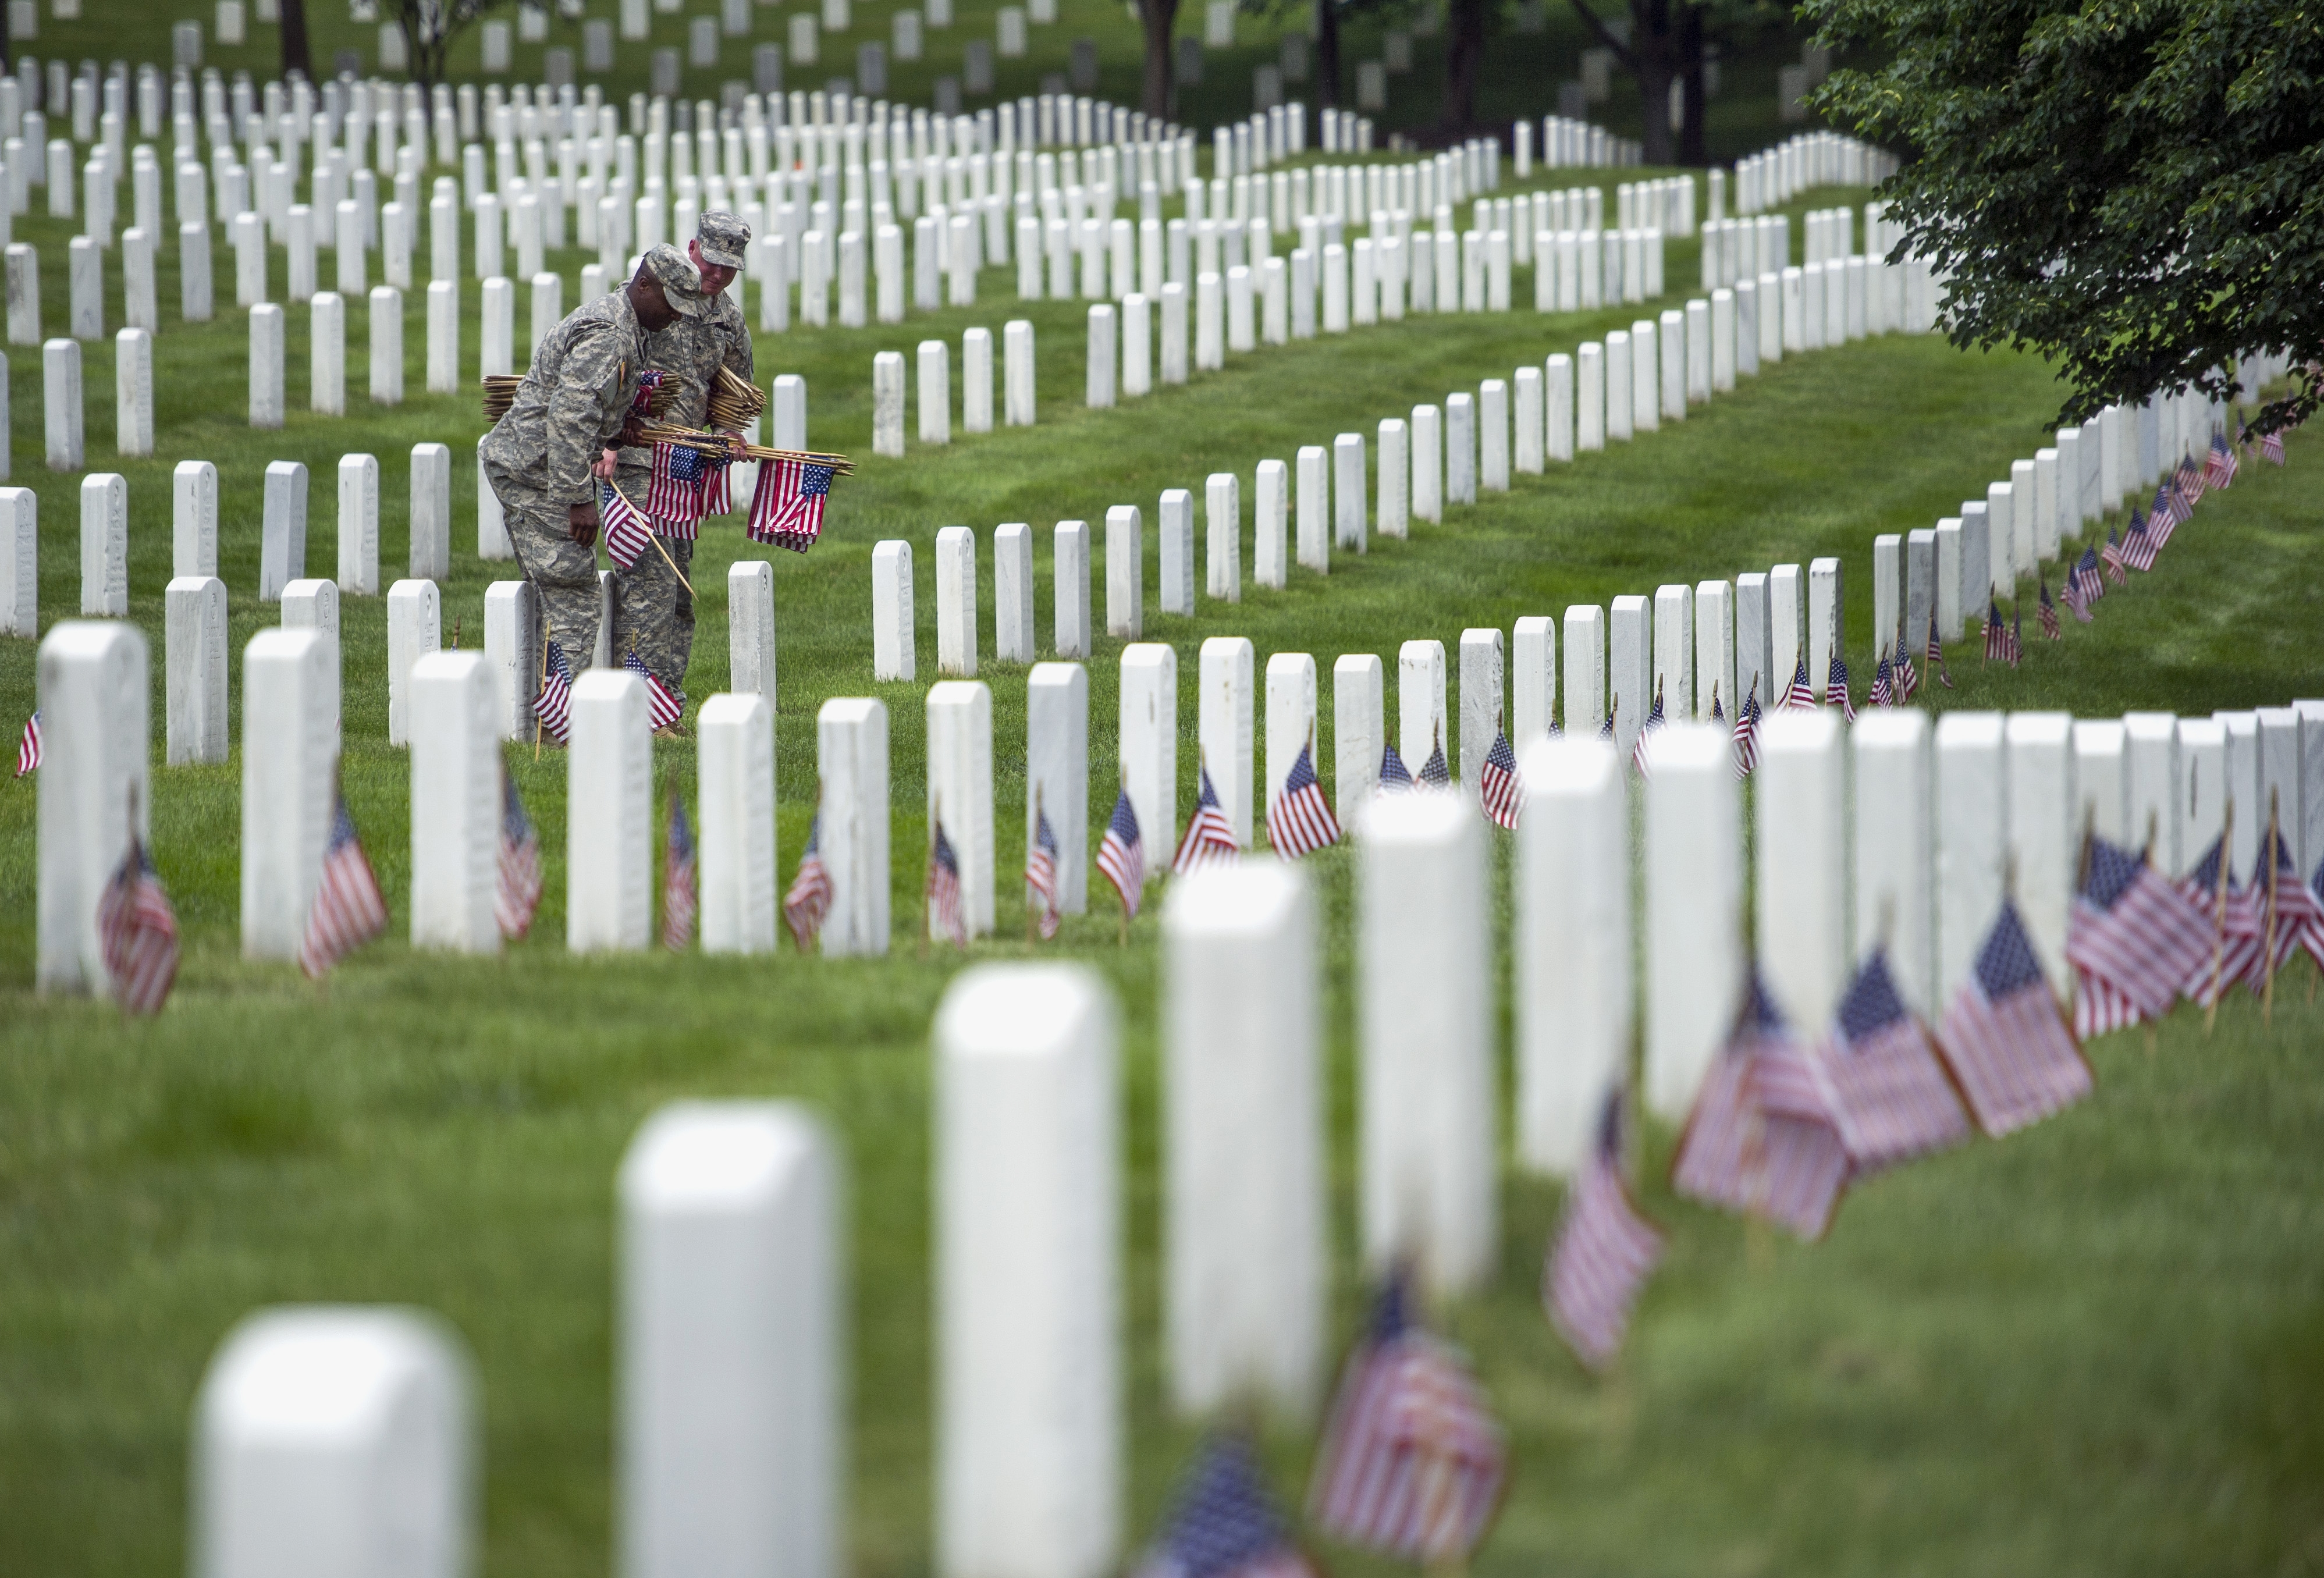 Soldiers placed flags on graves at Arlington National Cemetery Thursday in advance of Memorial Day.  Arlington has become the final resting place for more than 400,000 veterans and their family members.